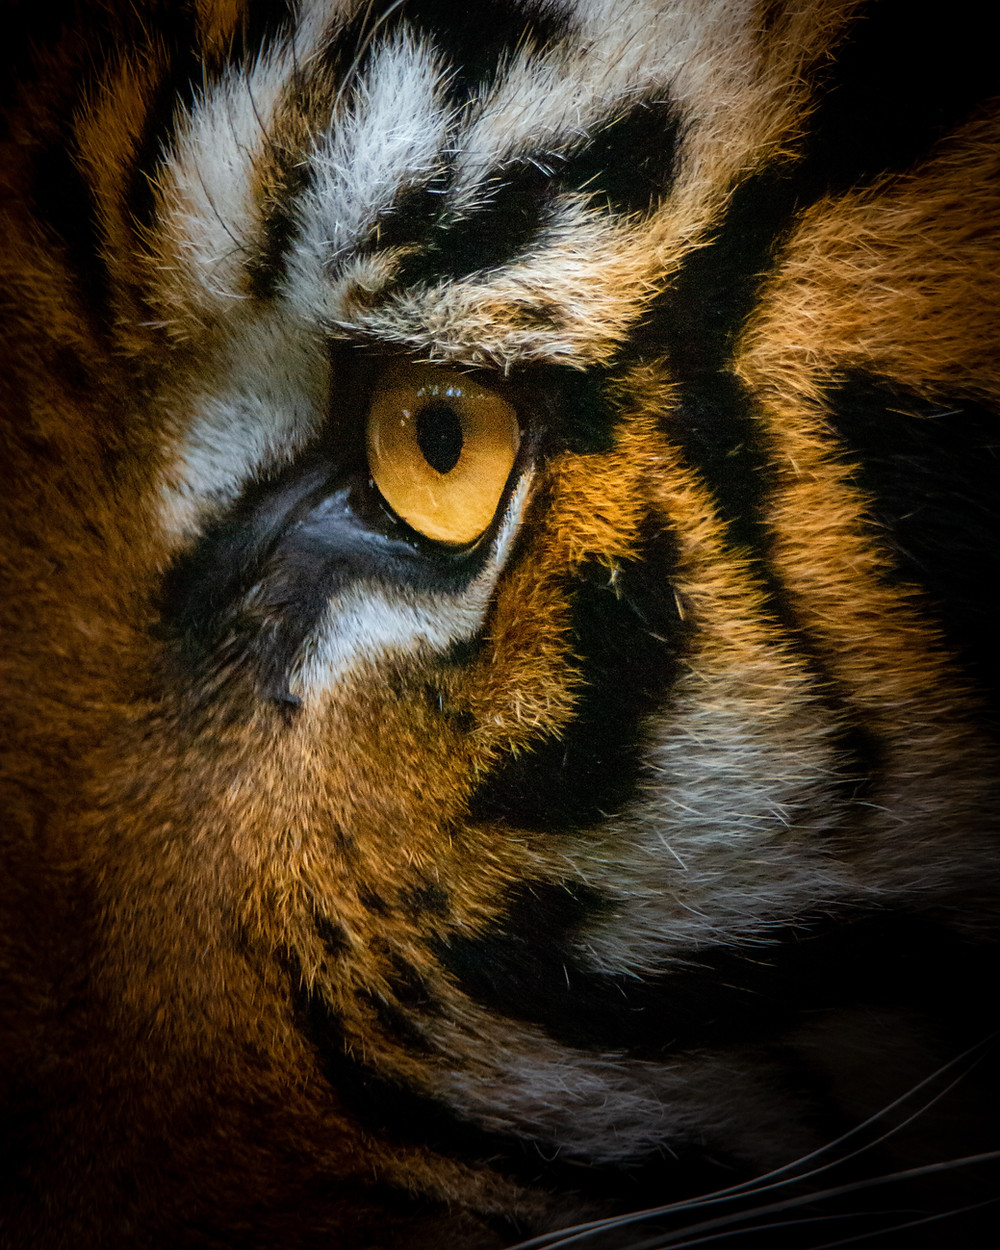 tiger eye cats are mostly tigers